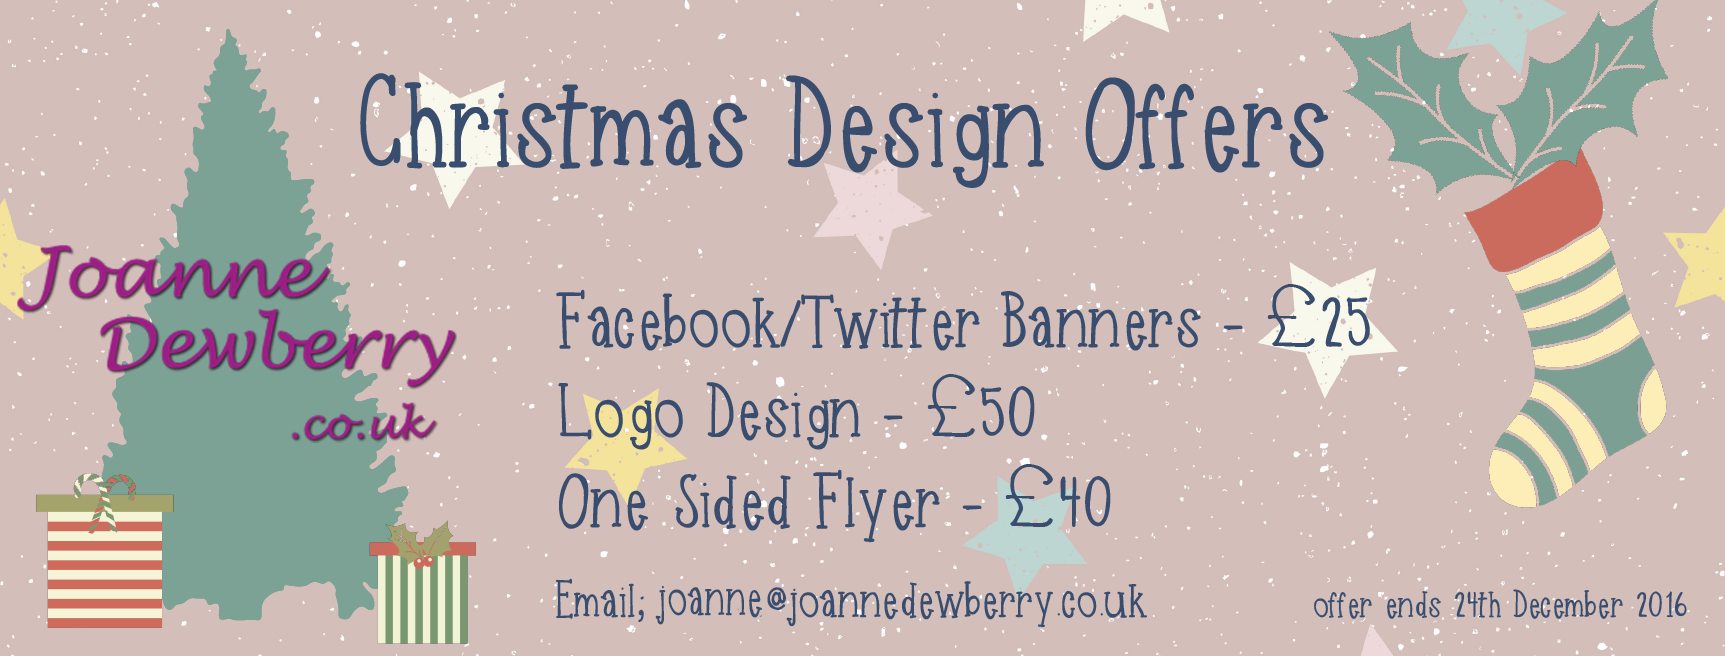 christmas-design-offers-01-copy